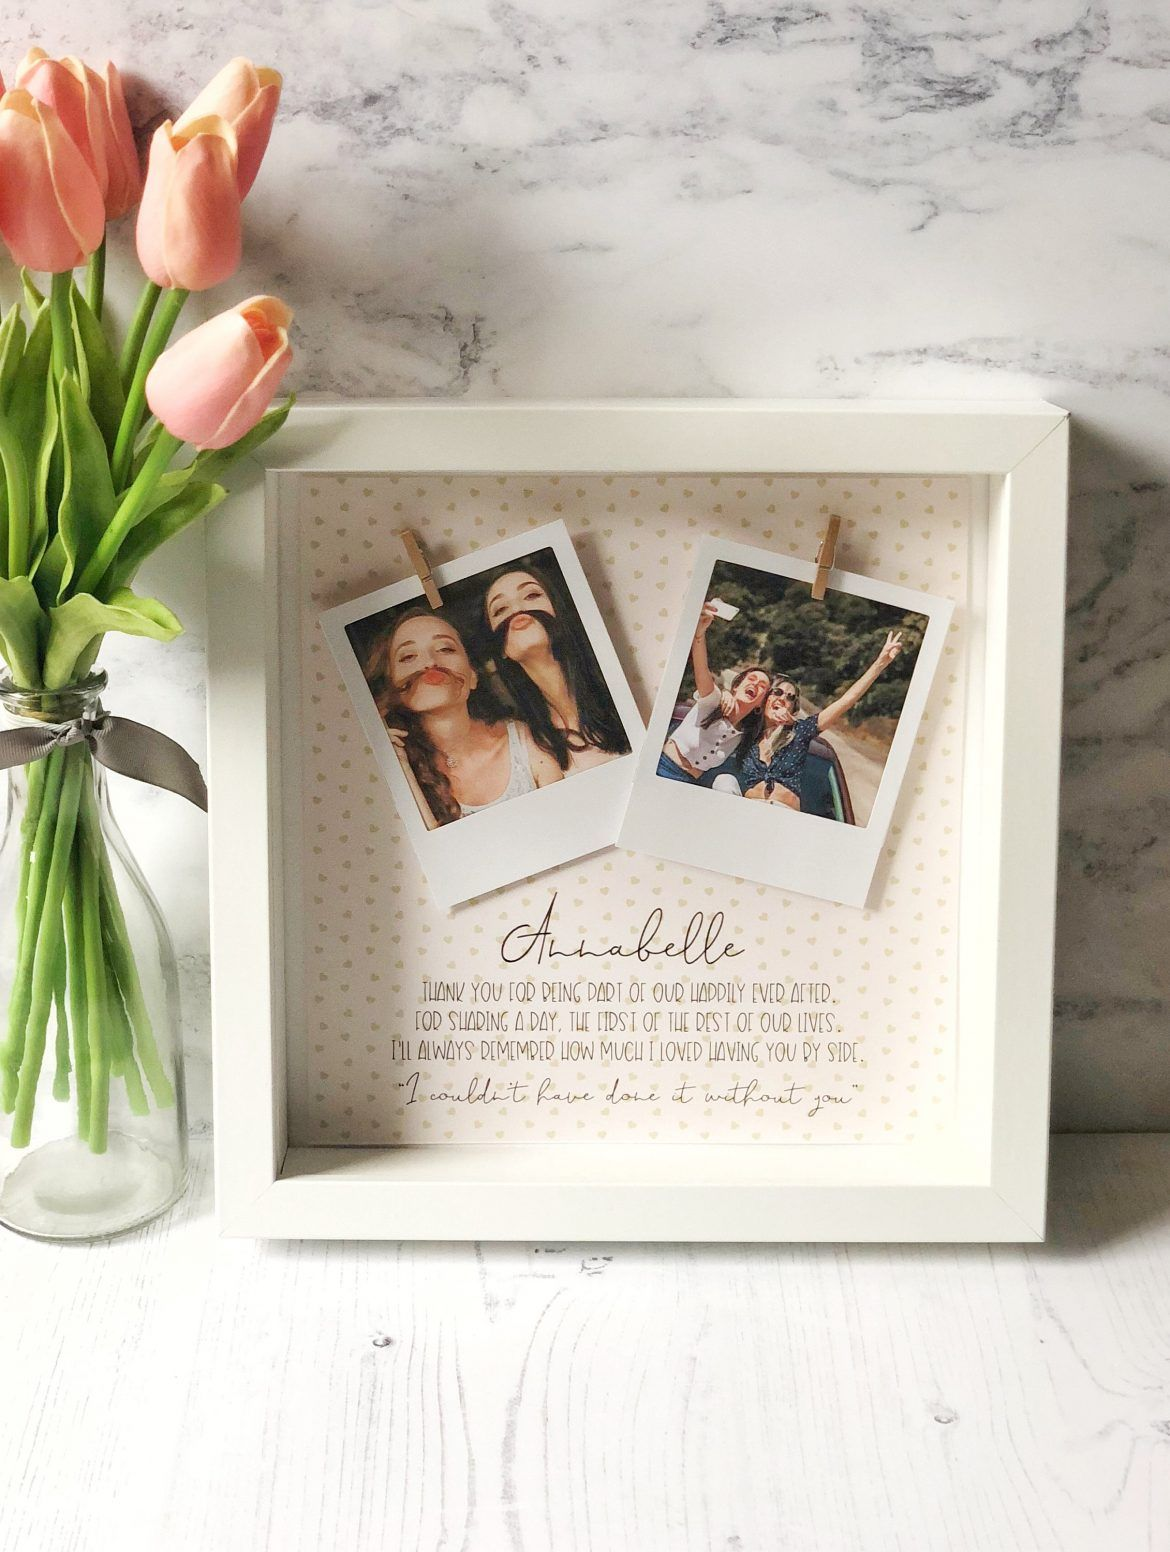 Maid of Honor Gifts for Sister 10 Best Gifts to Give the